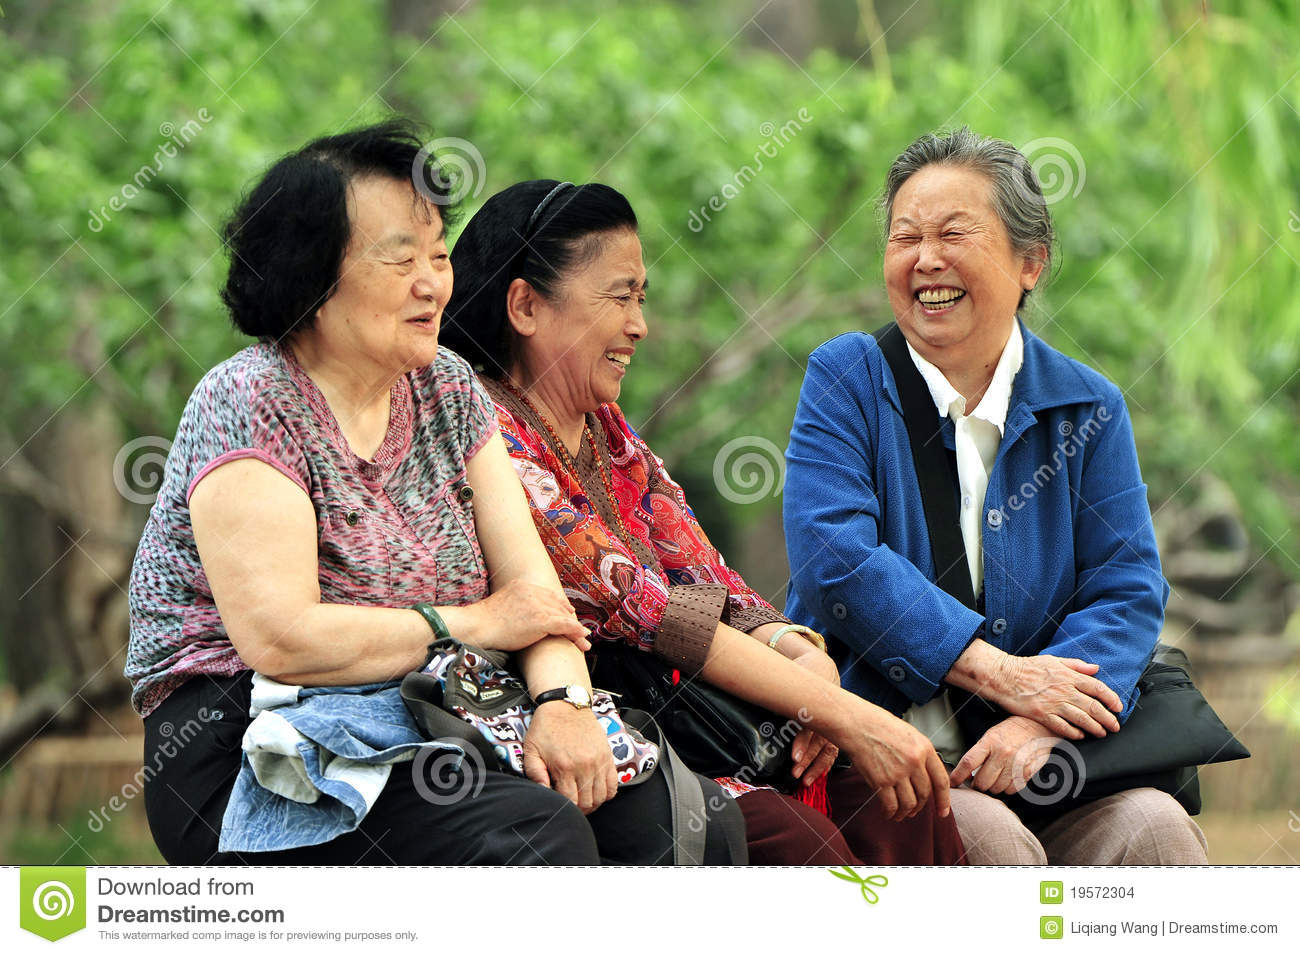 socio biography a womans life in china During&the&remaining&days&of&her&mother's&life,&the&two&women&spoke&often herself&into&service&in&china& & lottie&moon&remained&hopeful&that.